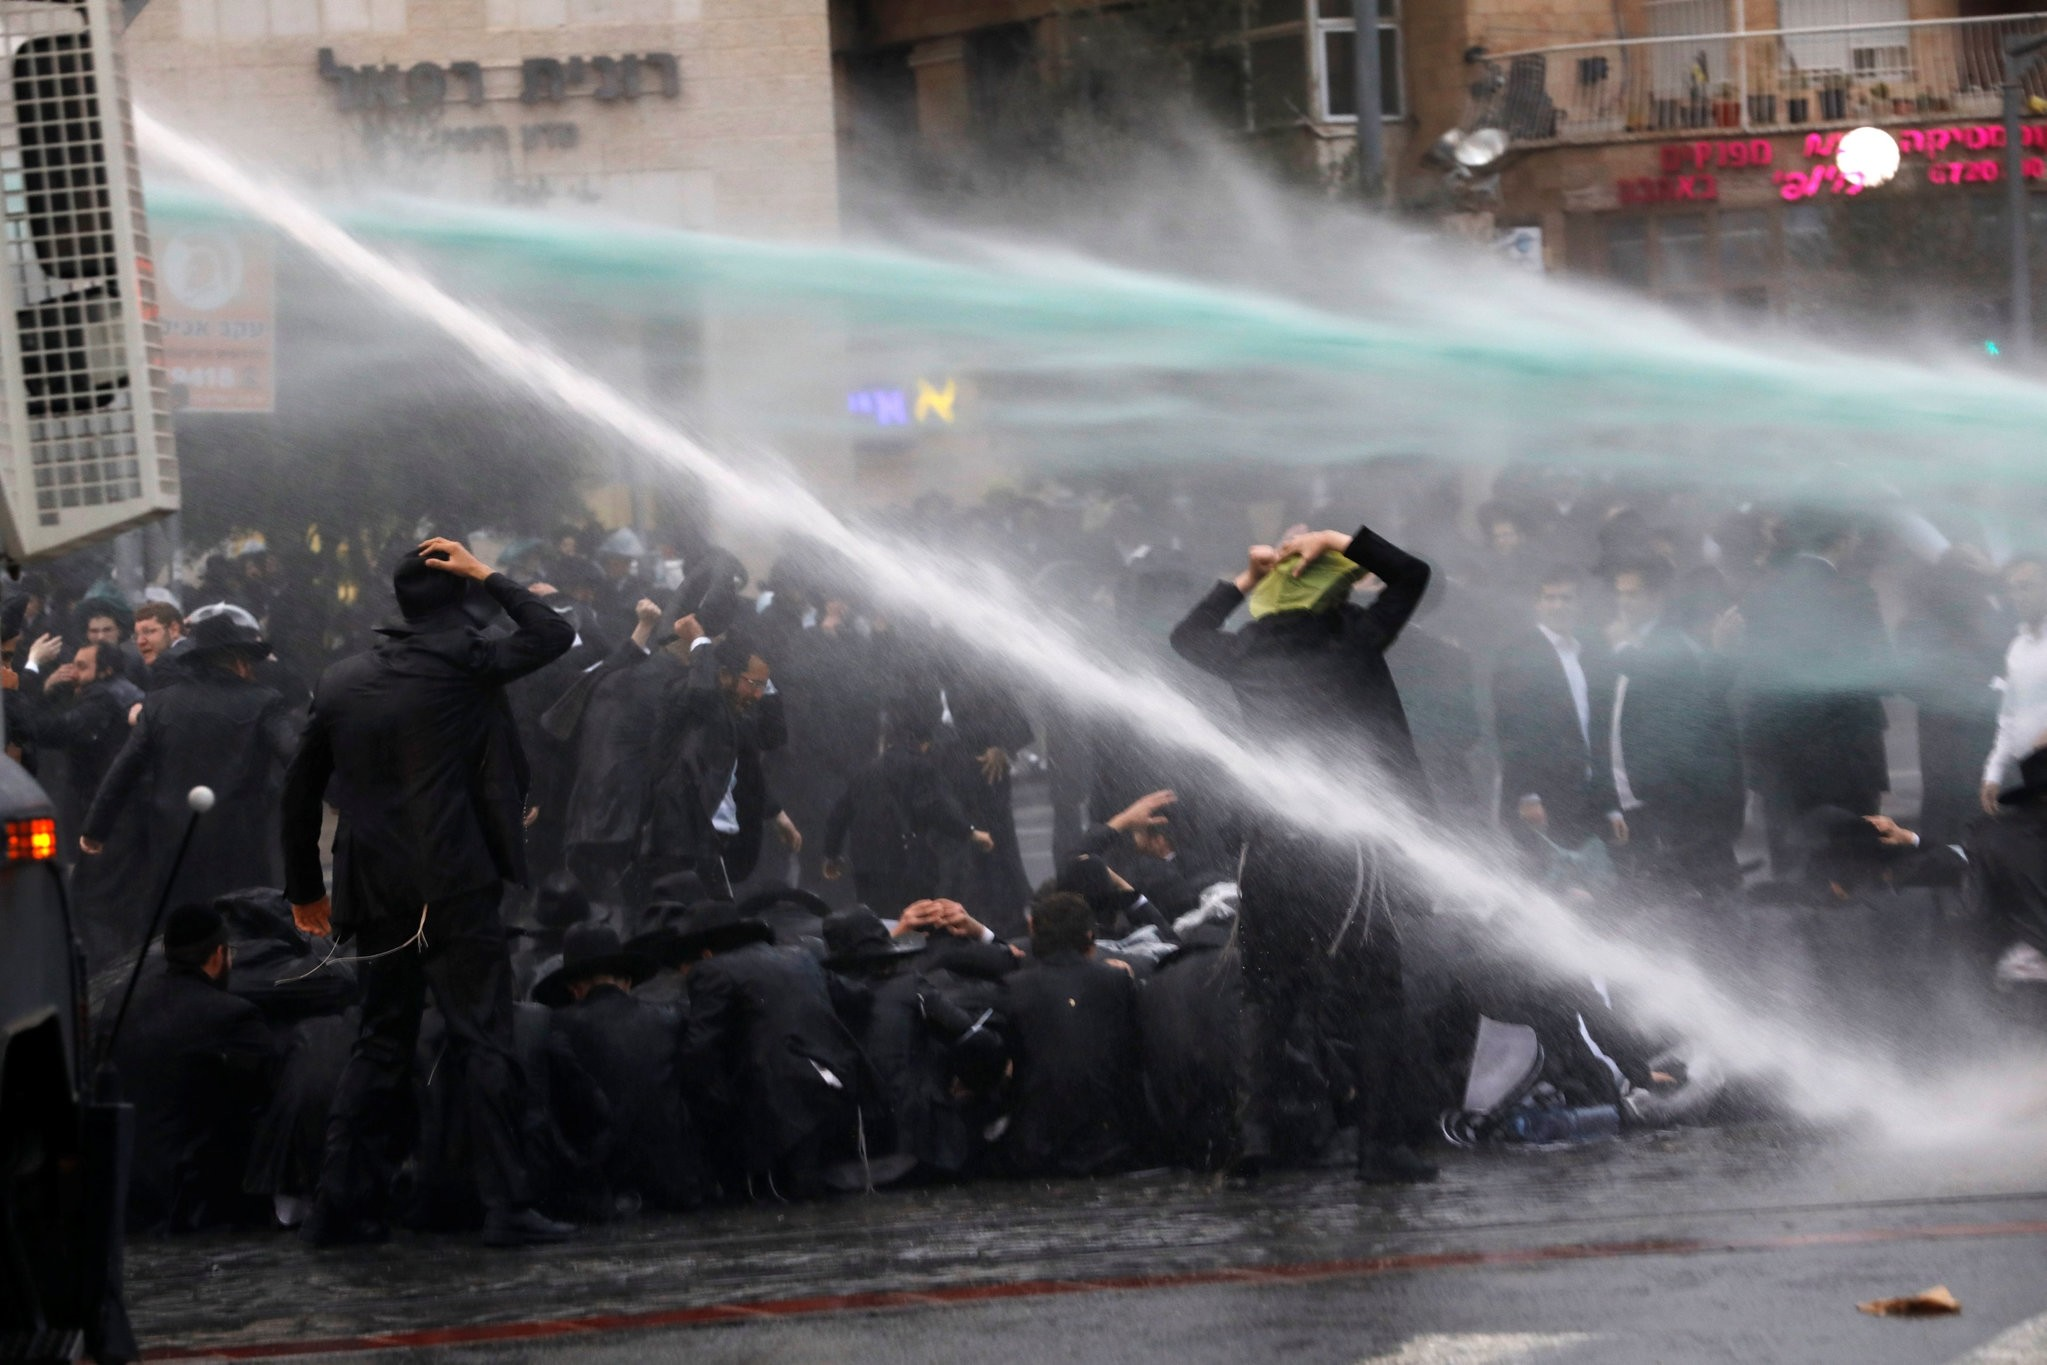 Ultra-Orthodox Jewish men are sprayed with water by Israeli police during a protest, in Jerusalem November 26, 2017. (REUTERS Photo)